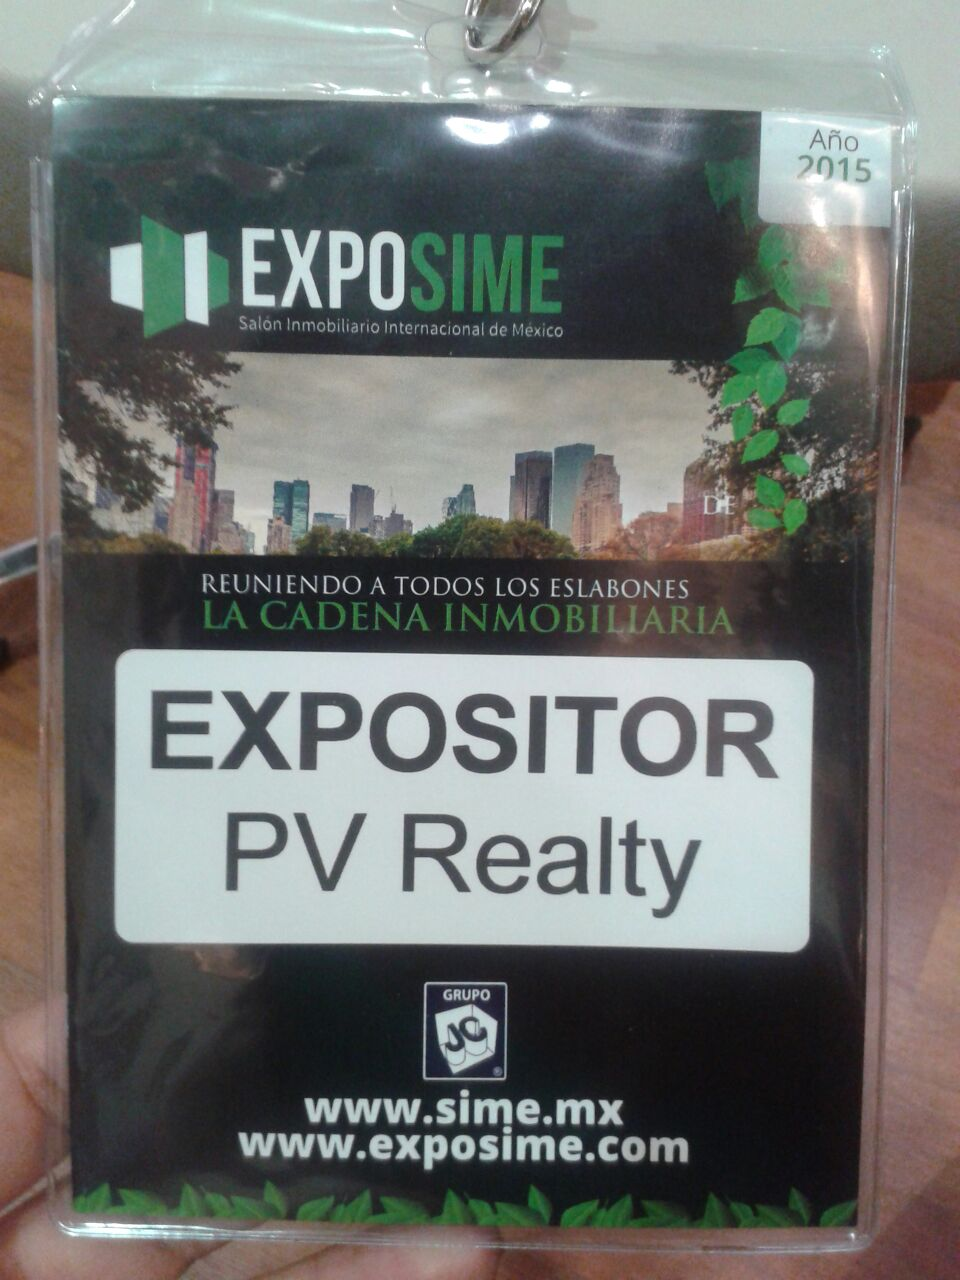 20150813080042  PV Realty, Trabajando para sus distinguidos clientes.  PV Realty  Working for its distinguished clients. 20150813080042